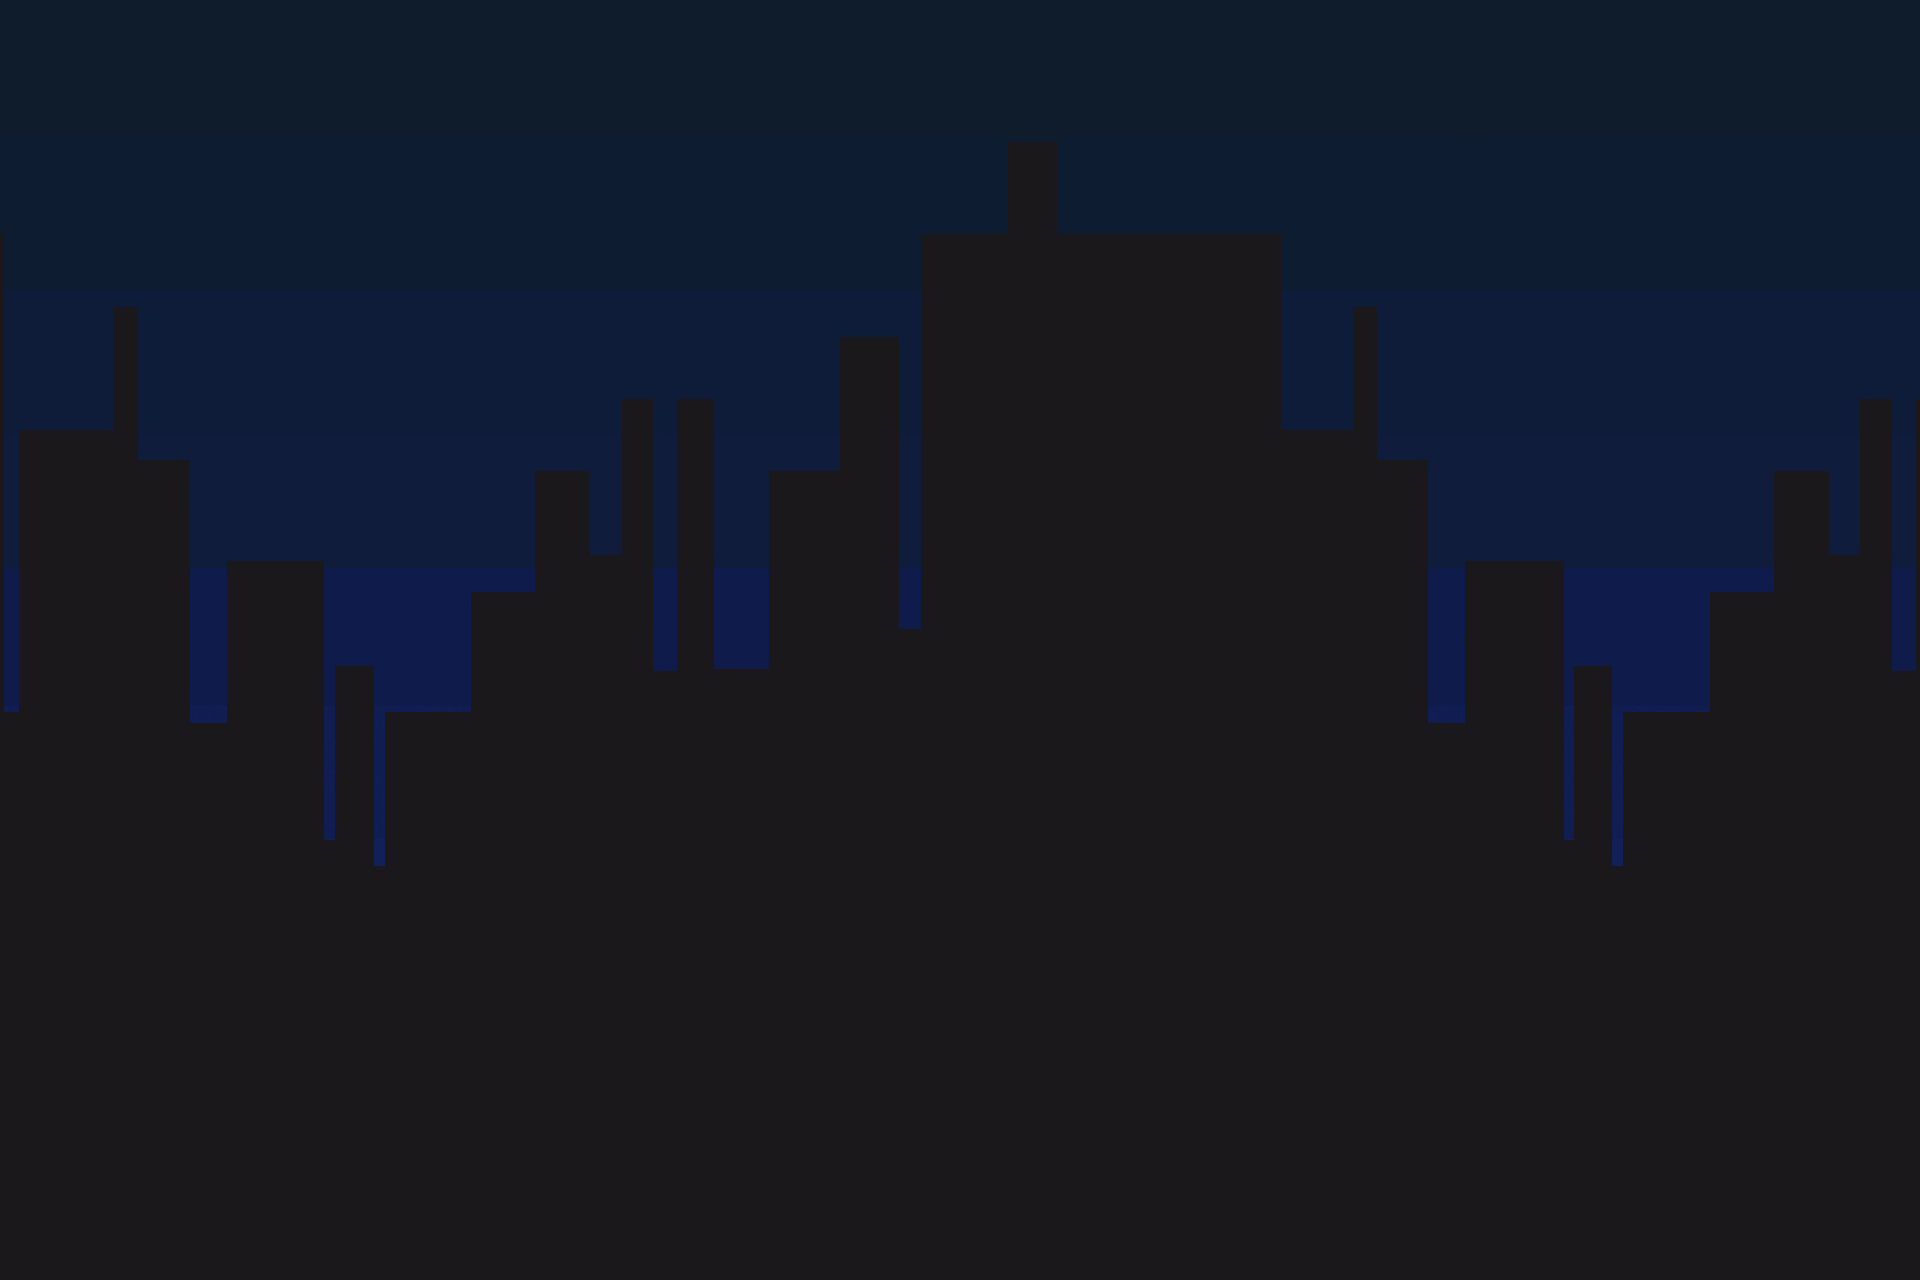 8 bit city background images pictures becuo